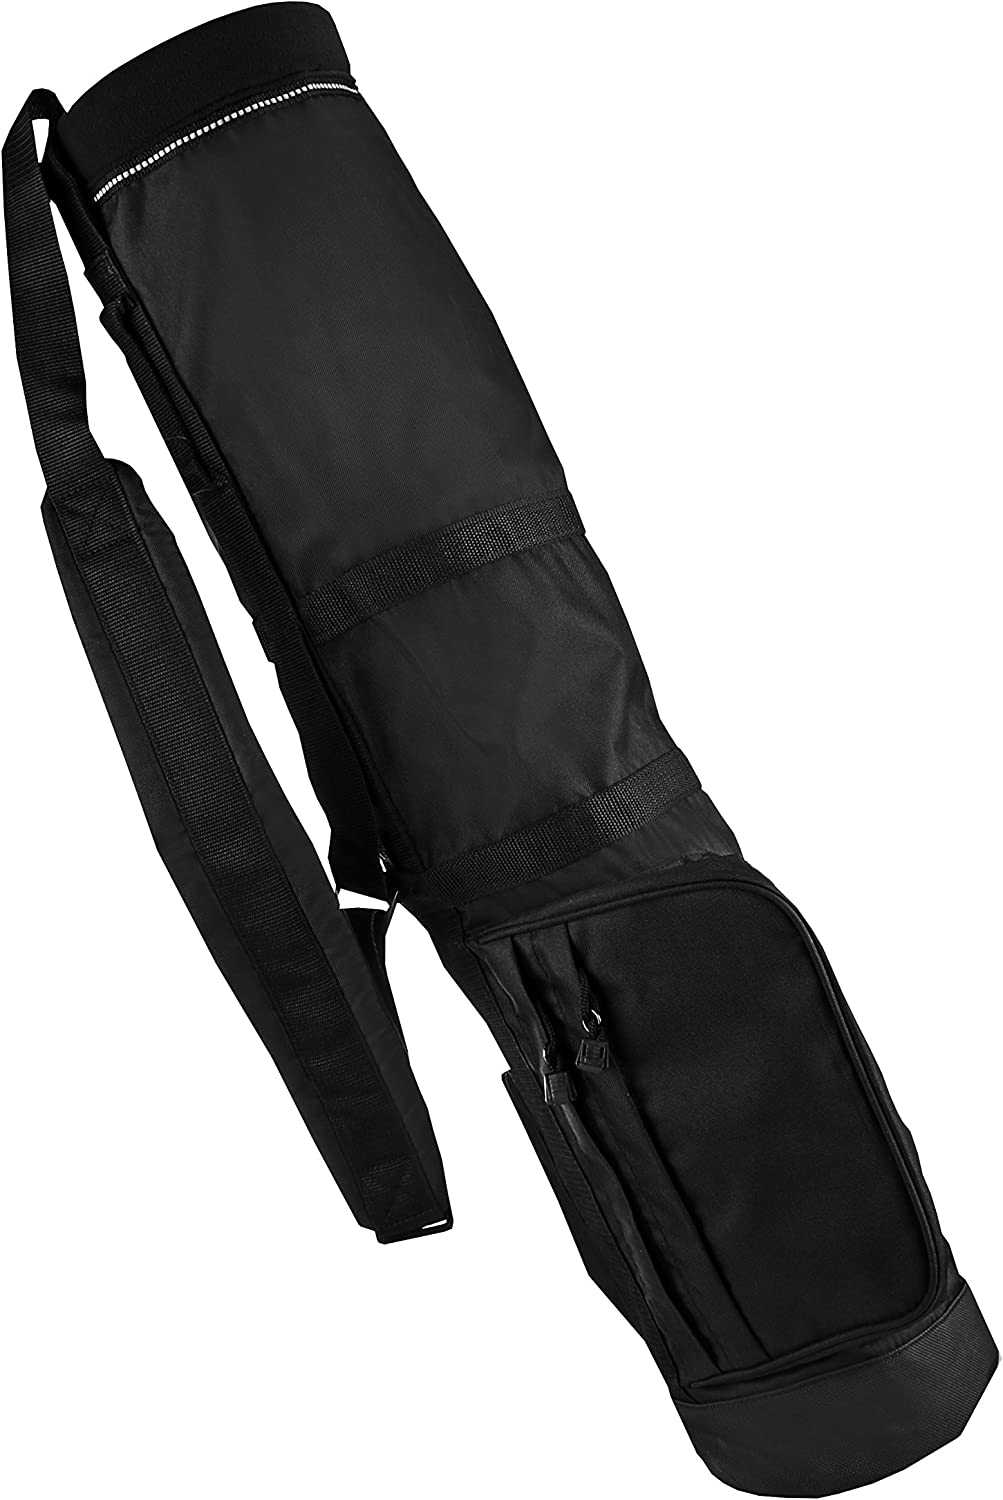 "7"" Sunday Bag, Lightweight Carry Bag, Executive Course Golf Bag"